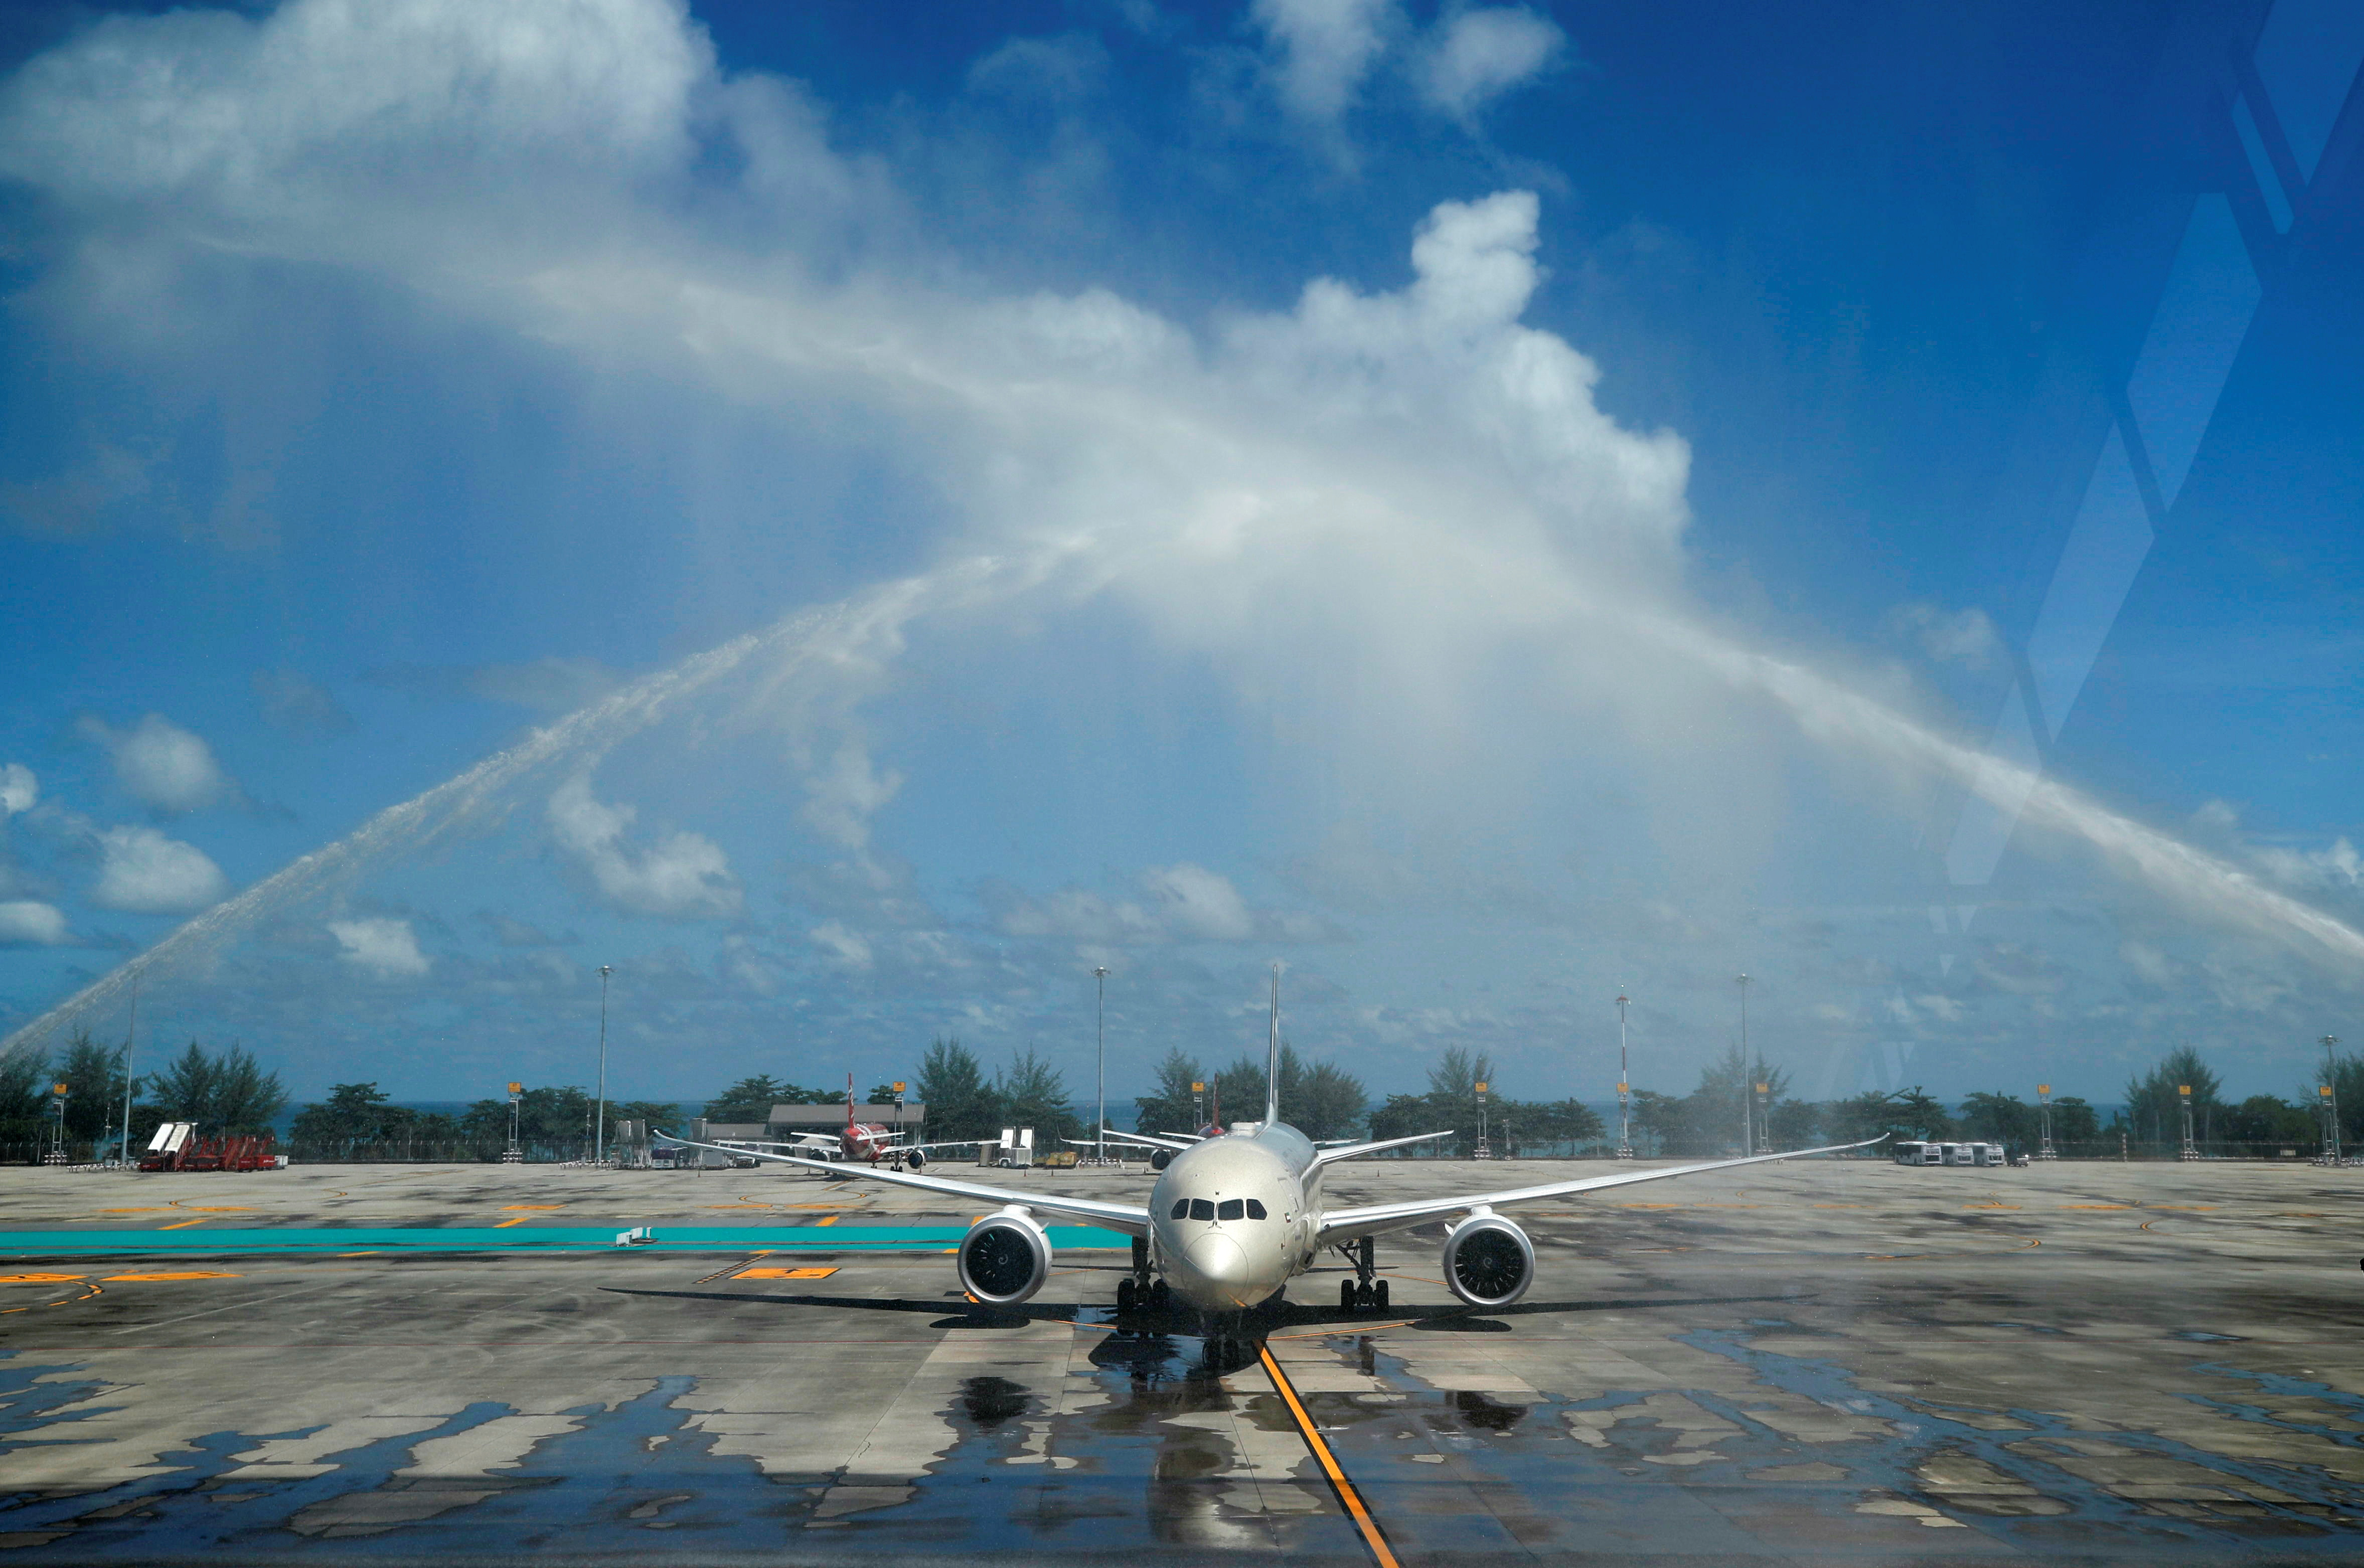 A plane carrying the first foreign tourists to arrive at the airport as Phuket reopens to overseas tourists, allowing foreigners fully vaccinated against the coronavirus disease (COVID-19) to visit the resort island without quarantine, receives a water cannon salute from fire trucks in Phuket, Thailand July 1, 2021. REUTERS/Jorge Silva